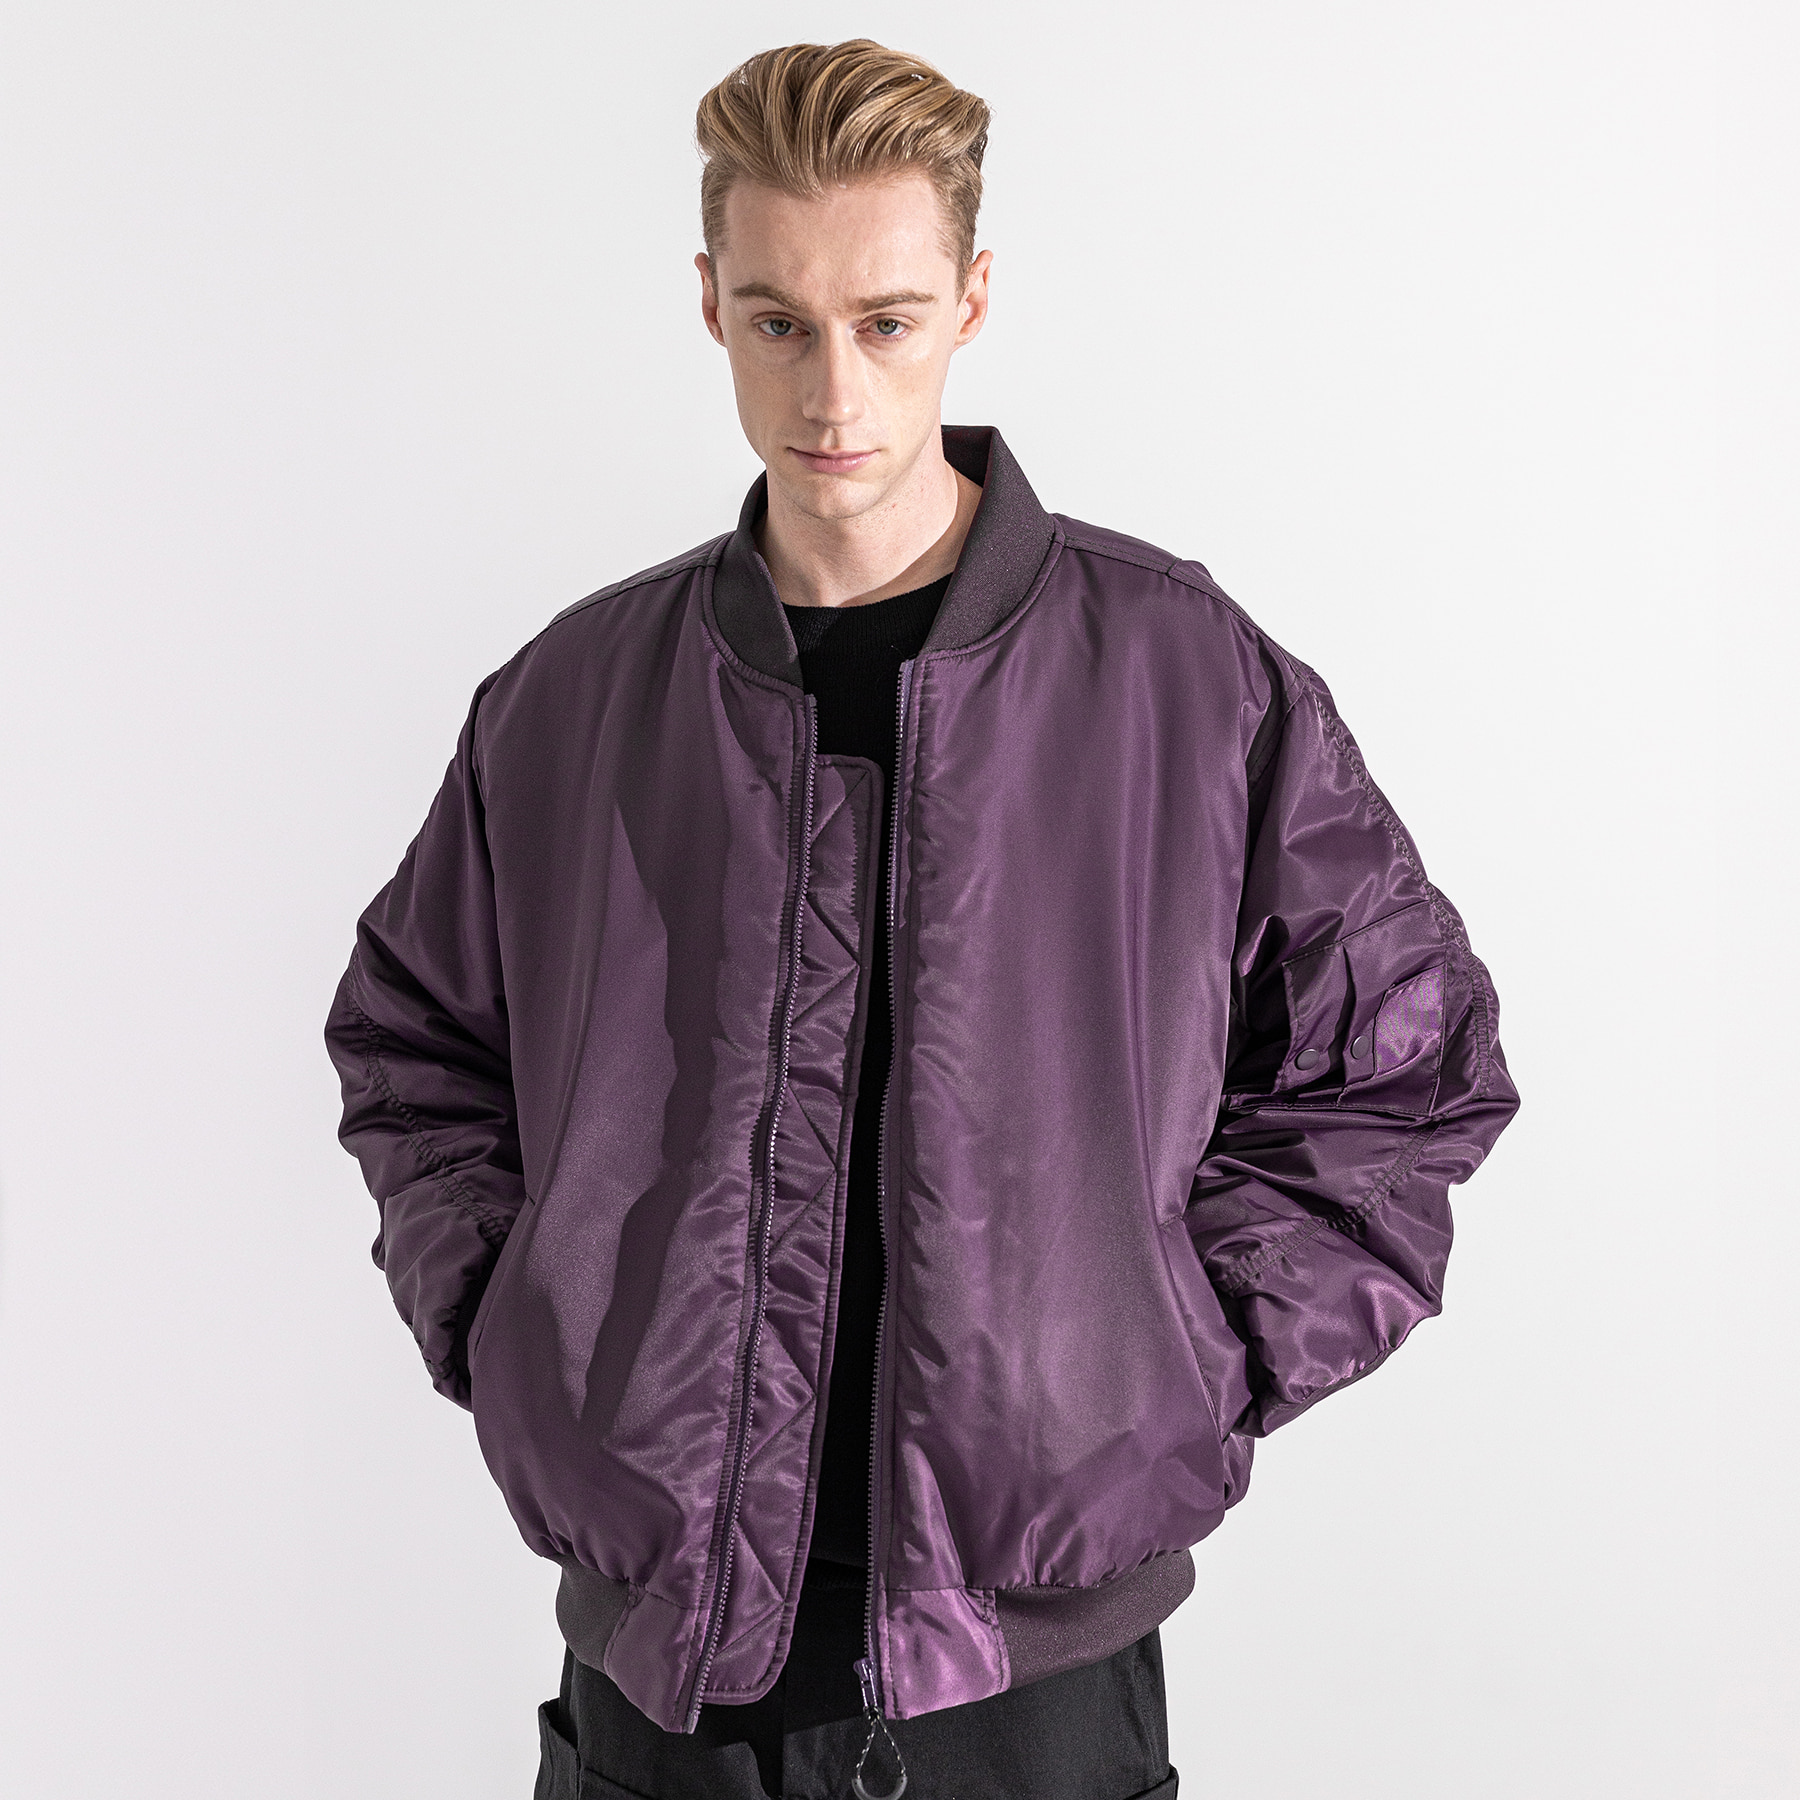 6OZ SHIRRING OVERSIZED MA-1 JACKET MWZPD002-PP